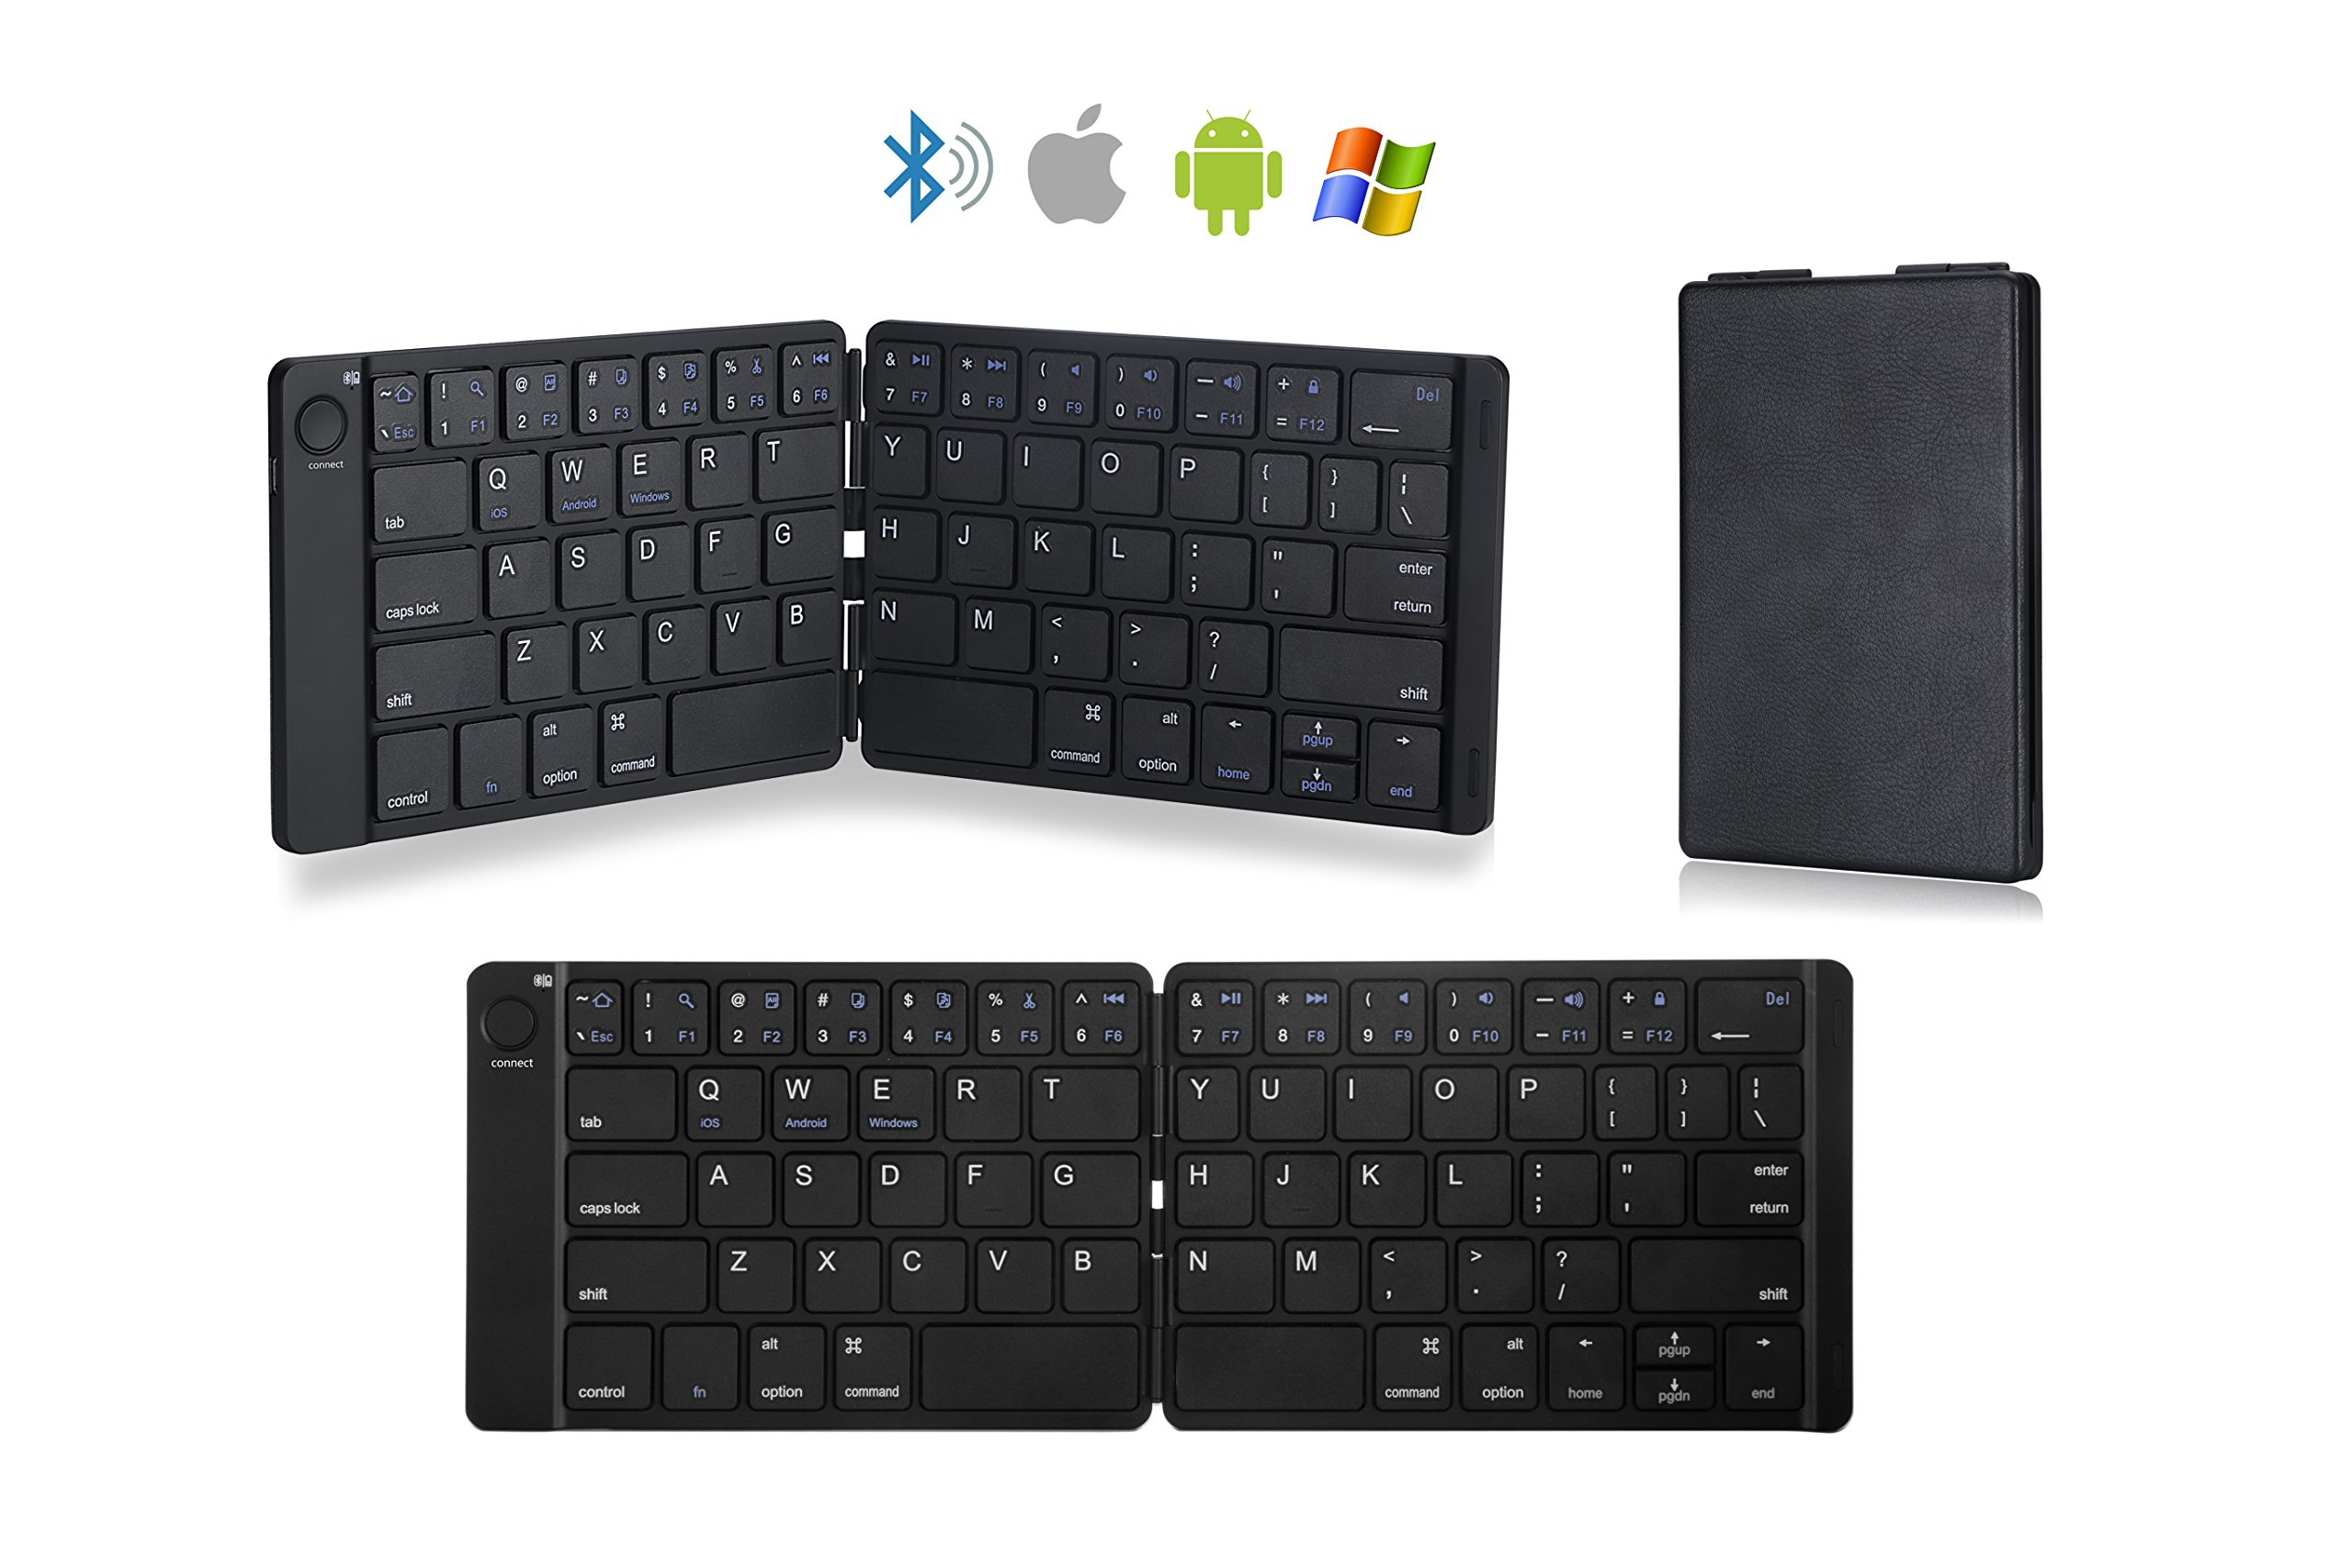 Arkscan KB21 Foldable Wireless Keyboard Mini Pocket Size for iOS/iPad / iPhone, Android, Windows, PC, Tablet, Smartphone, Apple TV, PS4 & other devices w/Bluetooth, Rechargeable & Portable